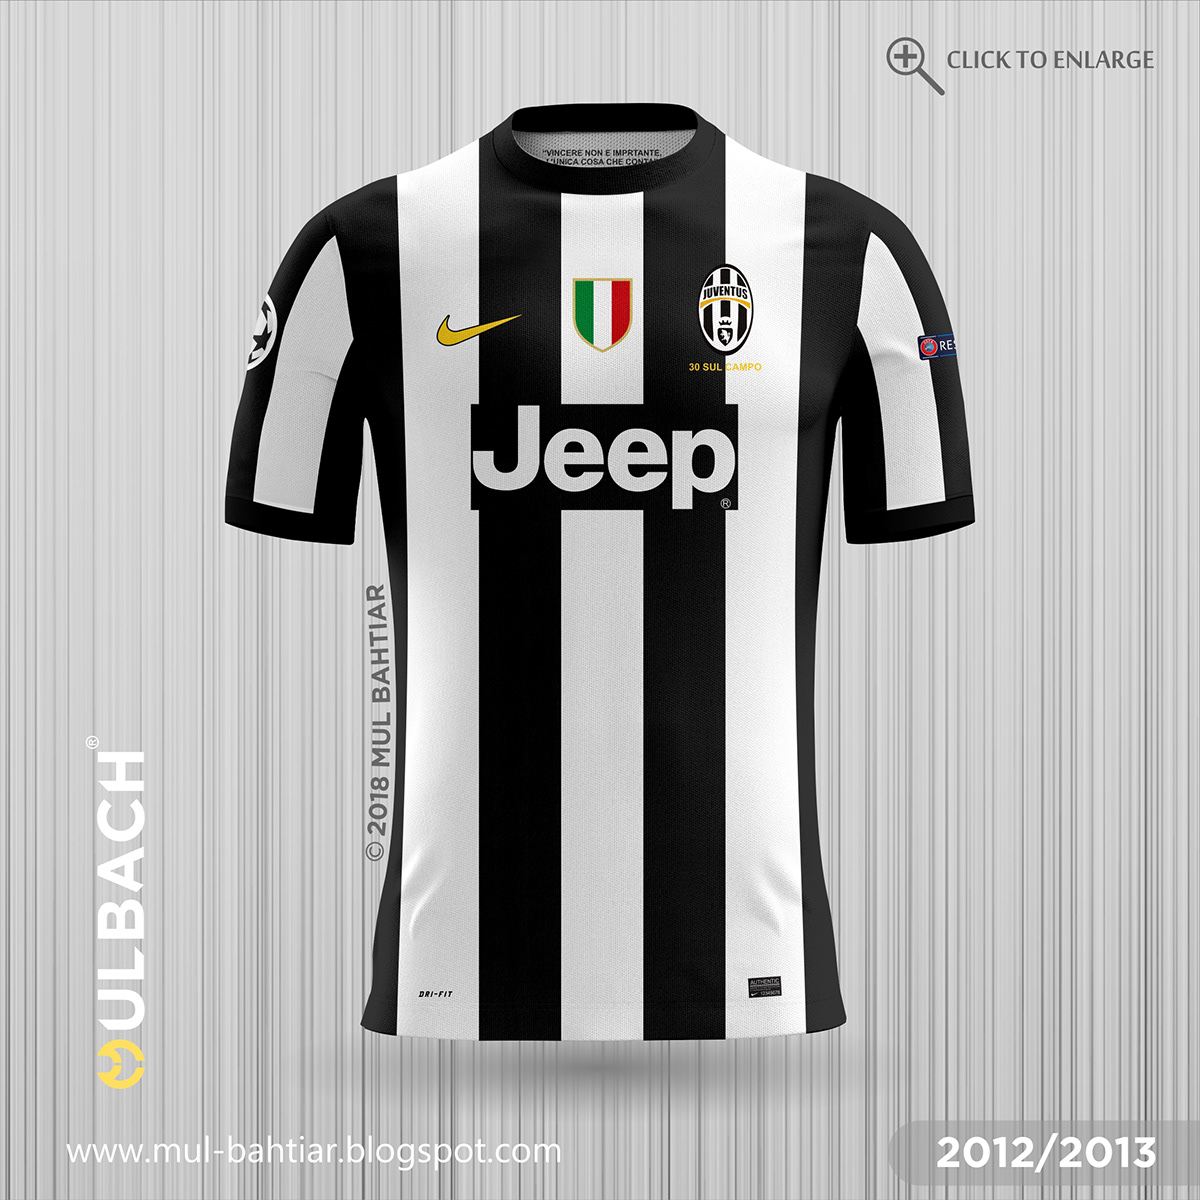 e526ac99bce Which Juventus kit is your favorite  Let us know in the comments below.